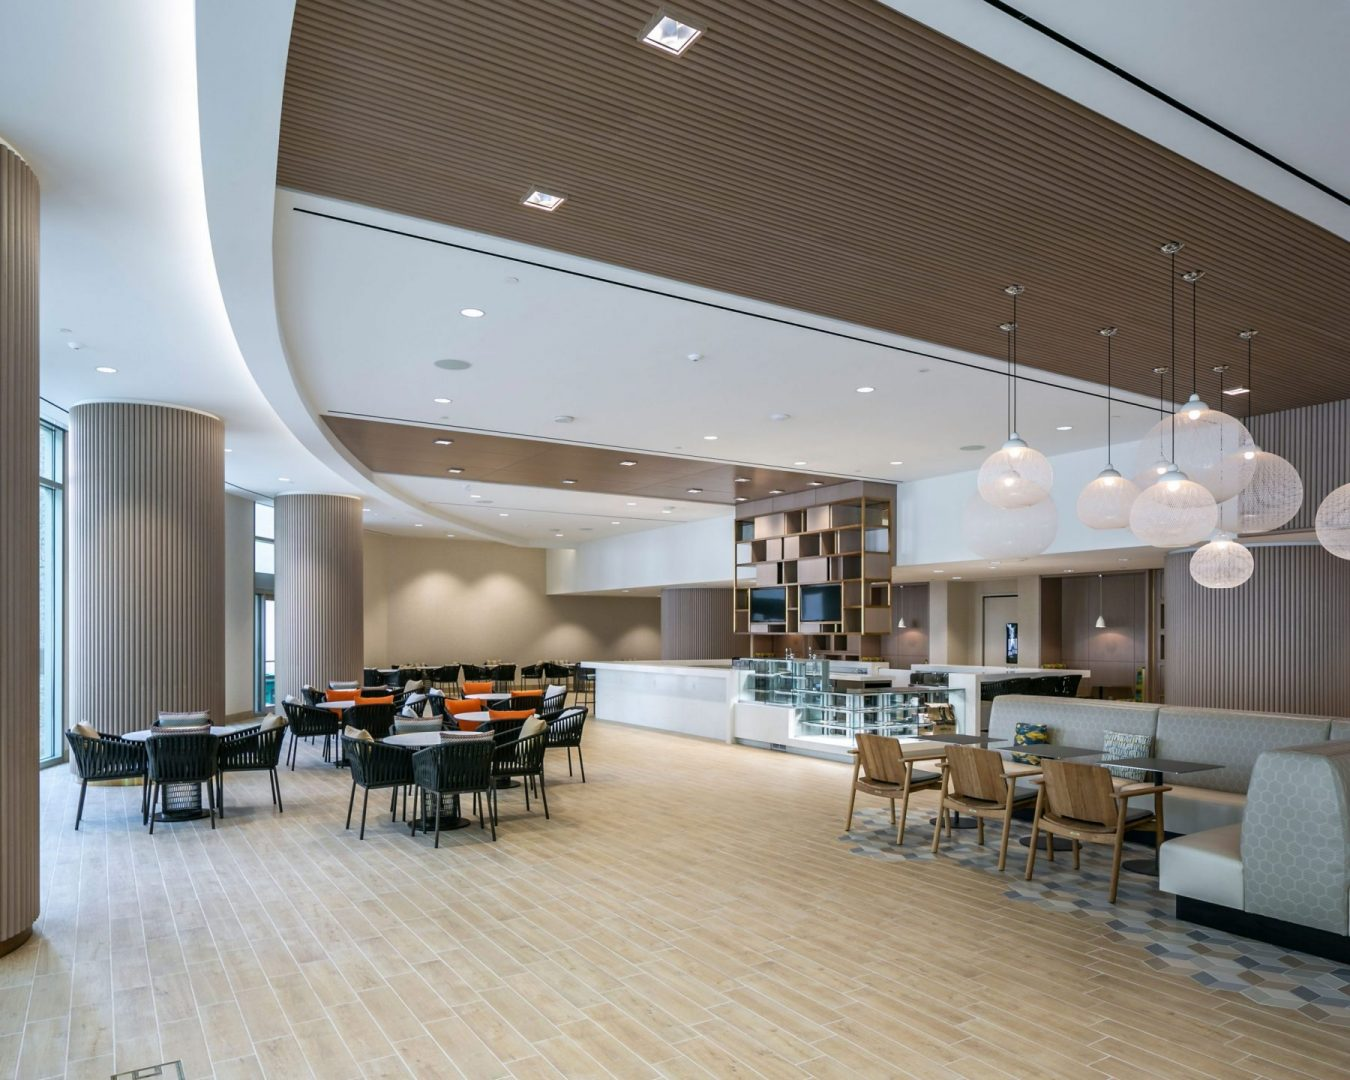 Lobby Renovation Architecture Building Repositioning Design Coffee Bar Entertainment Space